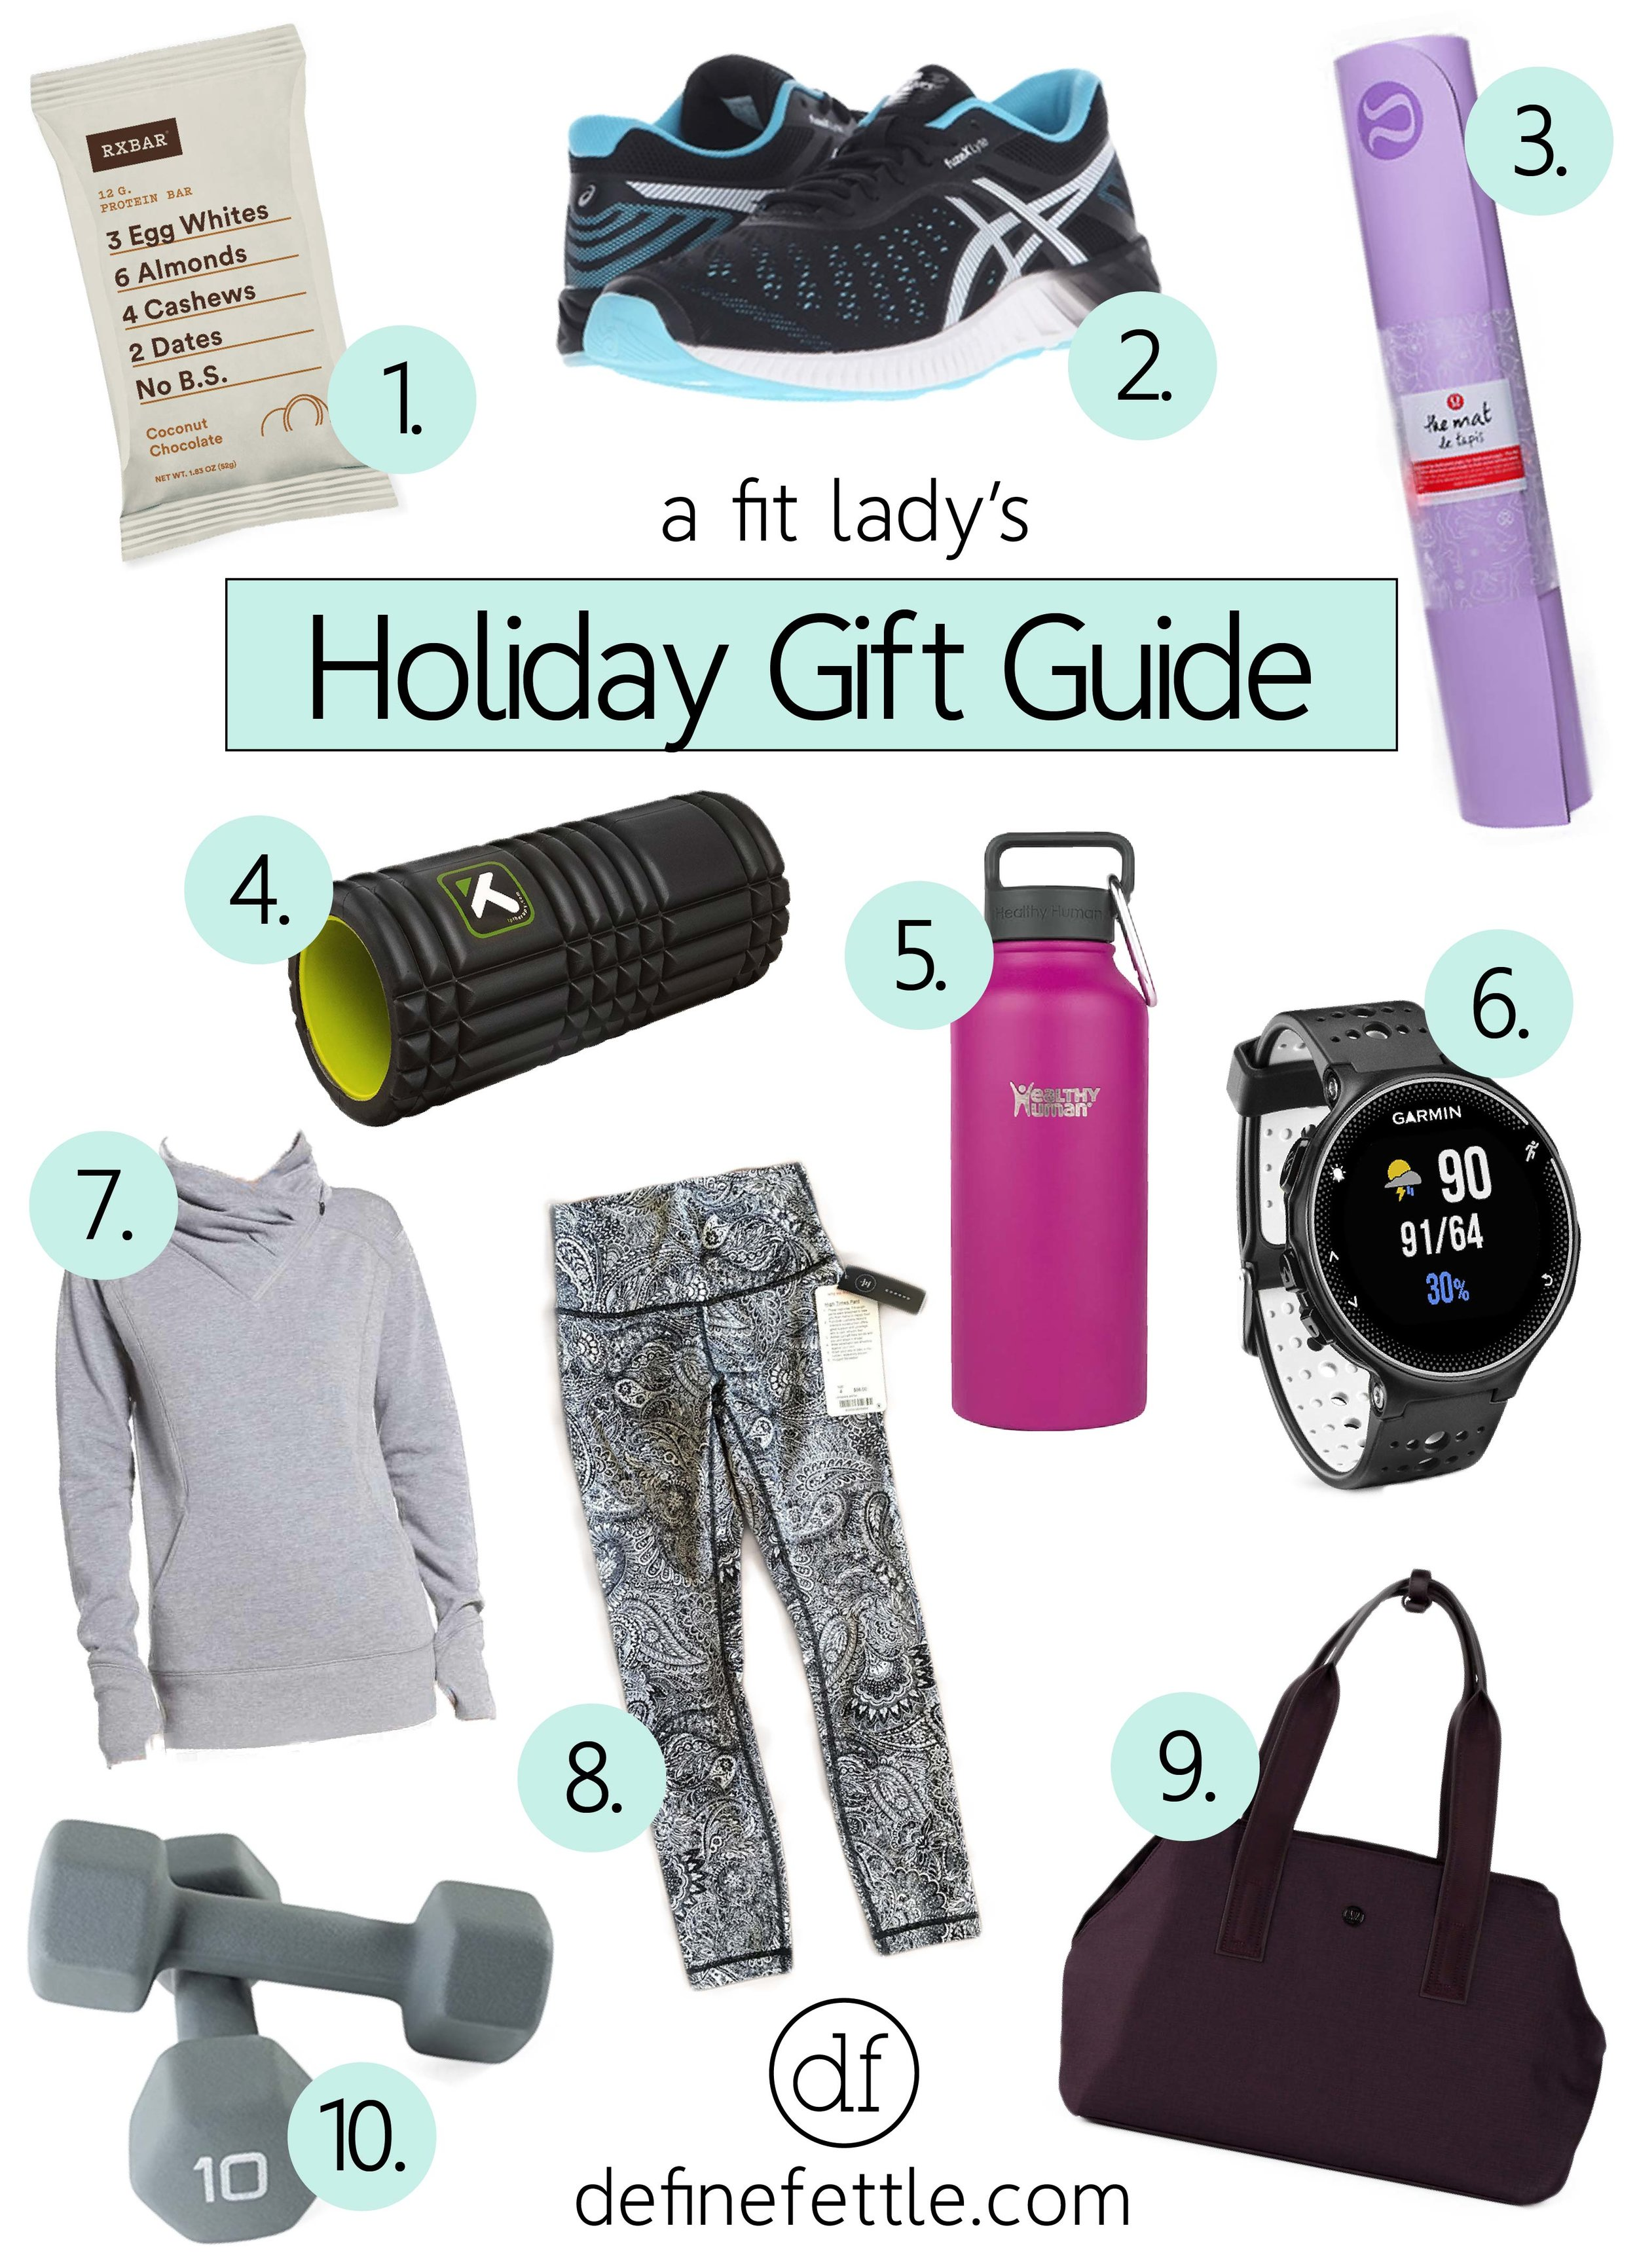 Holiday Gift Guide, Fitness, Workout, Fit Girl, Fit Lady, Exercise, Fitness Addict, WIsh List, Lululemon, Protein Bars, Healthy Human, Asics, Garmin, Yoga,